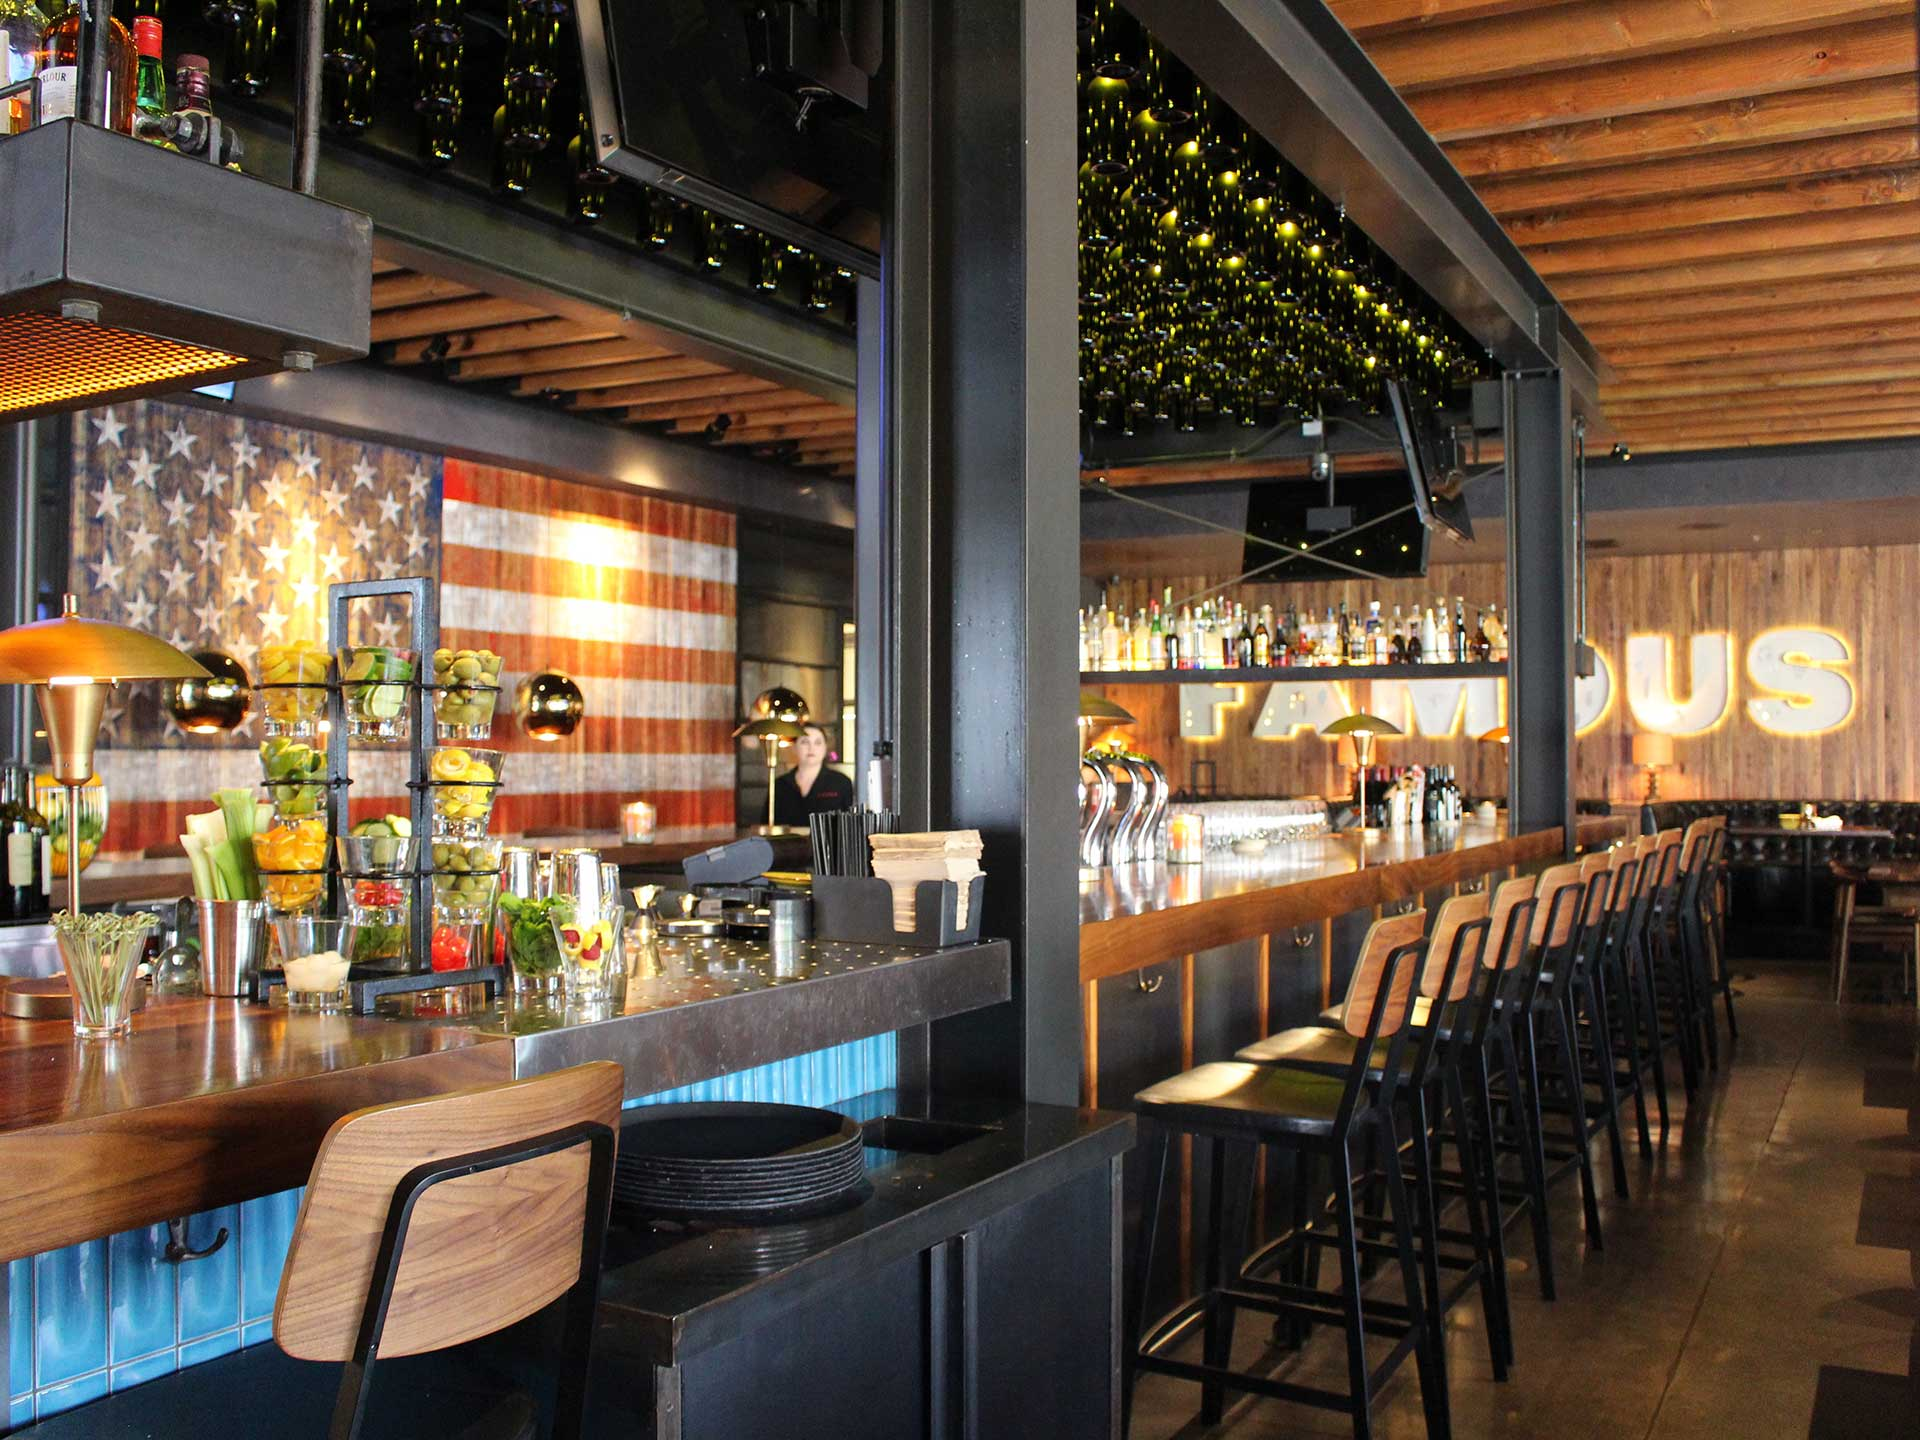 Jimmy's Brea provides a trendy bar and seating area